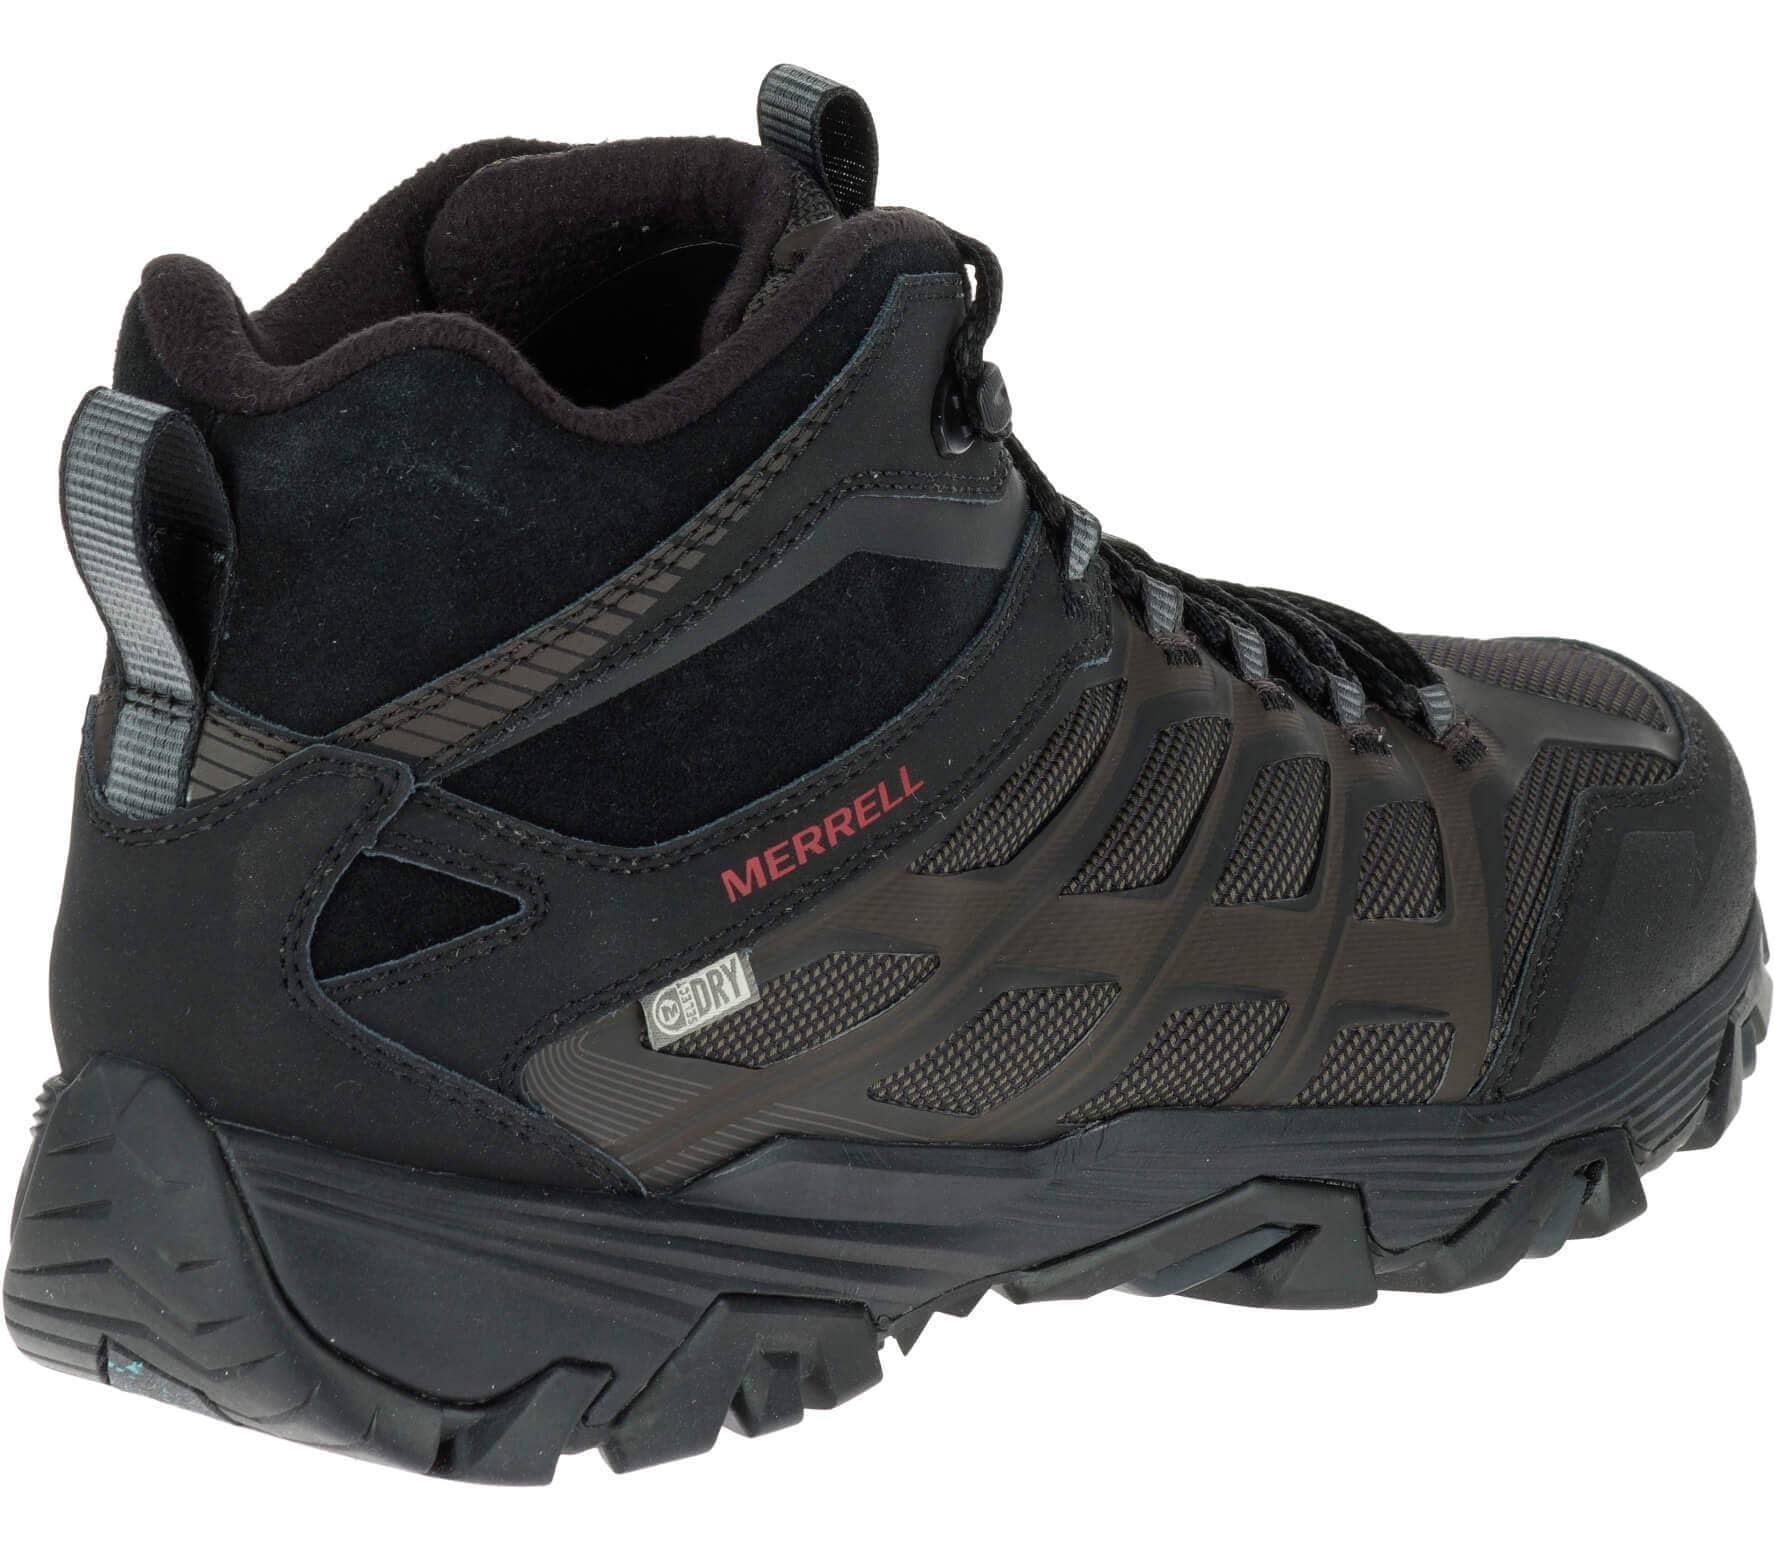 Merrell - Moab FST Ice Thermo men s winter shoes (black grey) - buy ... c5f184ccf8